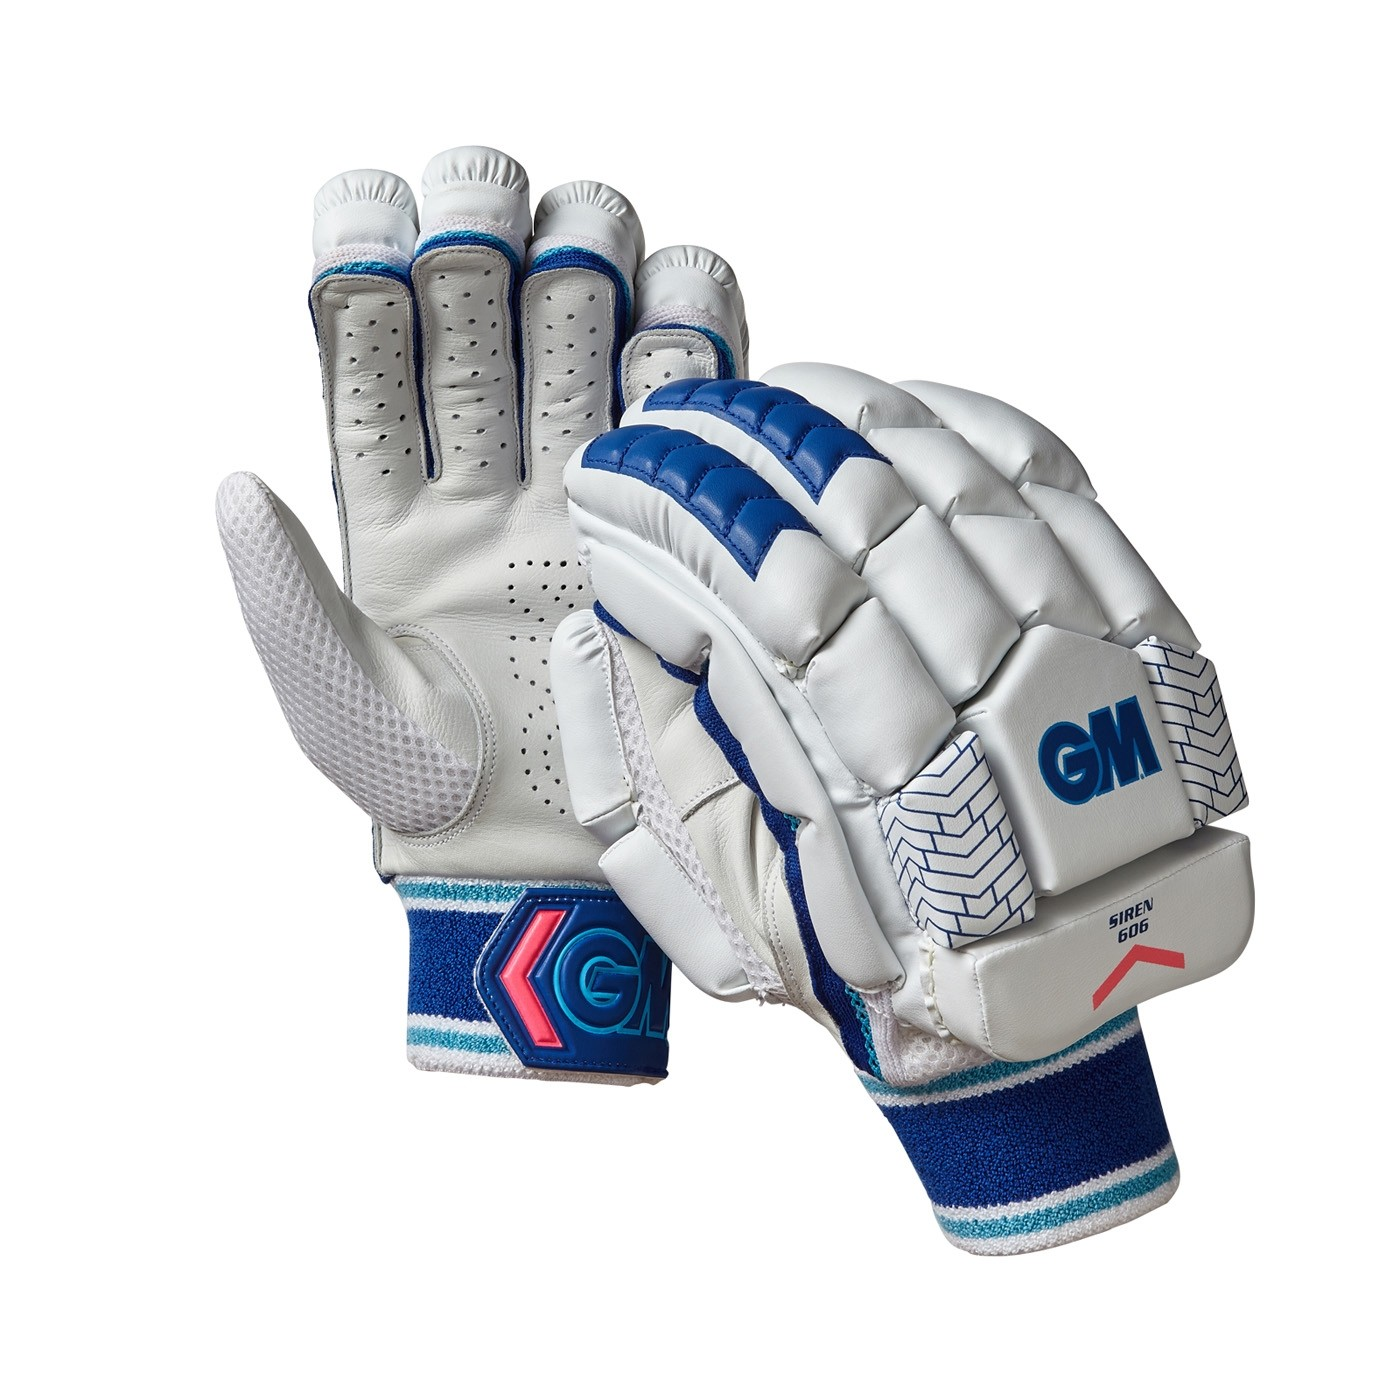 2021 Gunn and Moore Siren 606 Batting Gloves